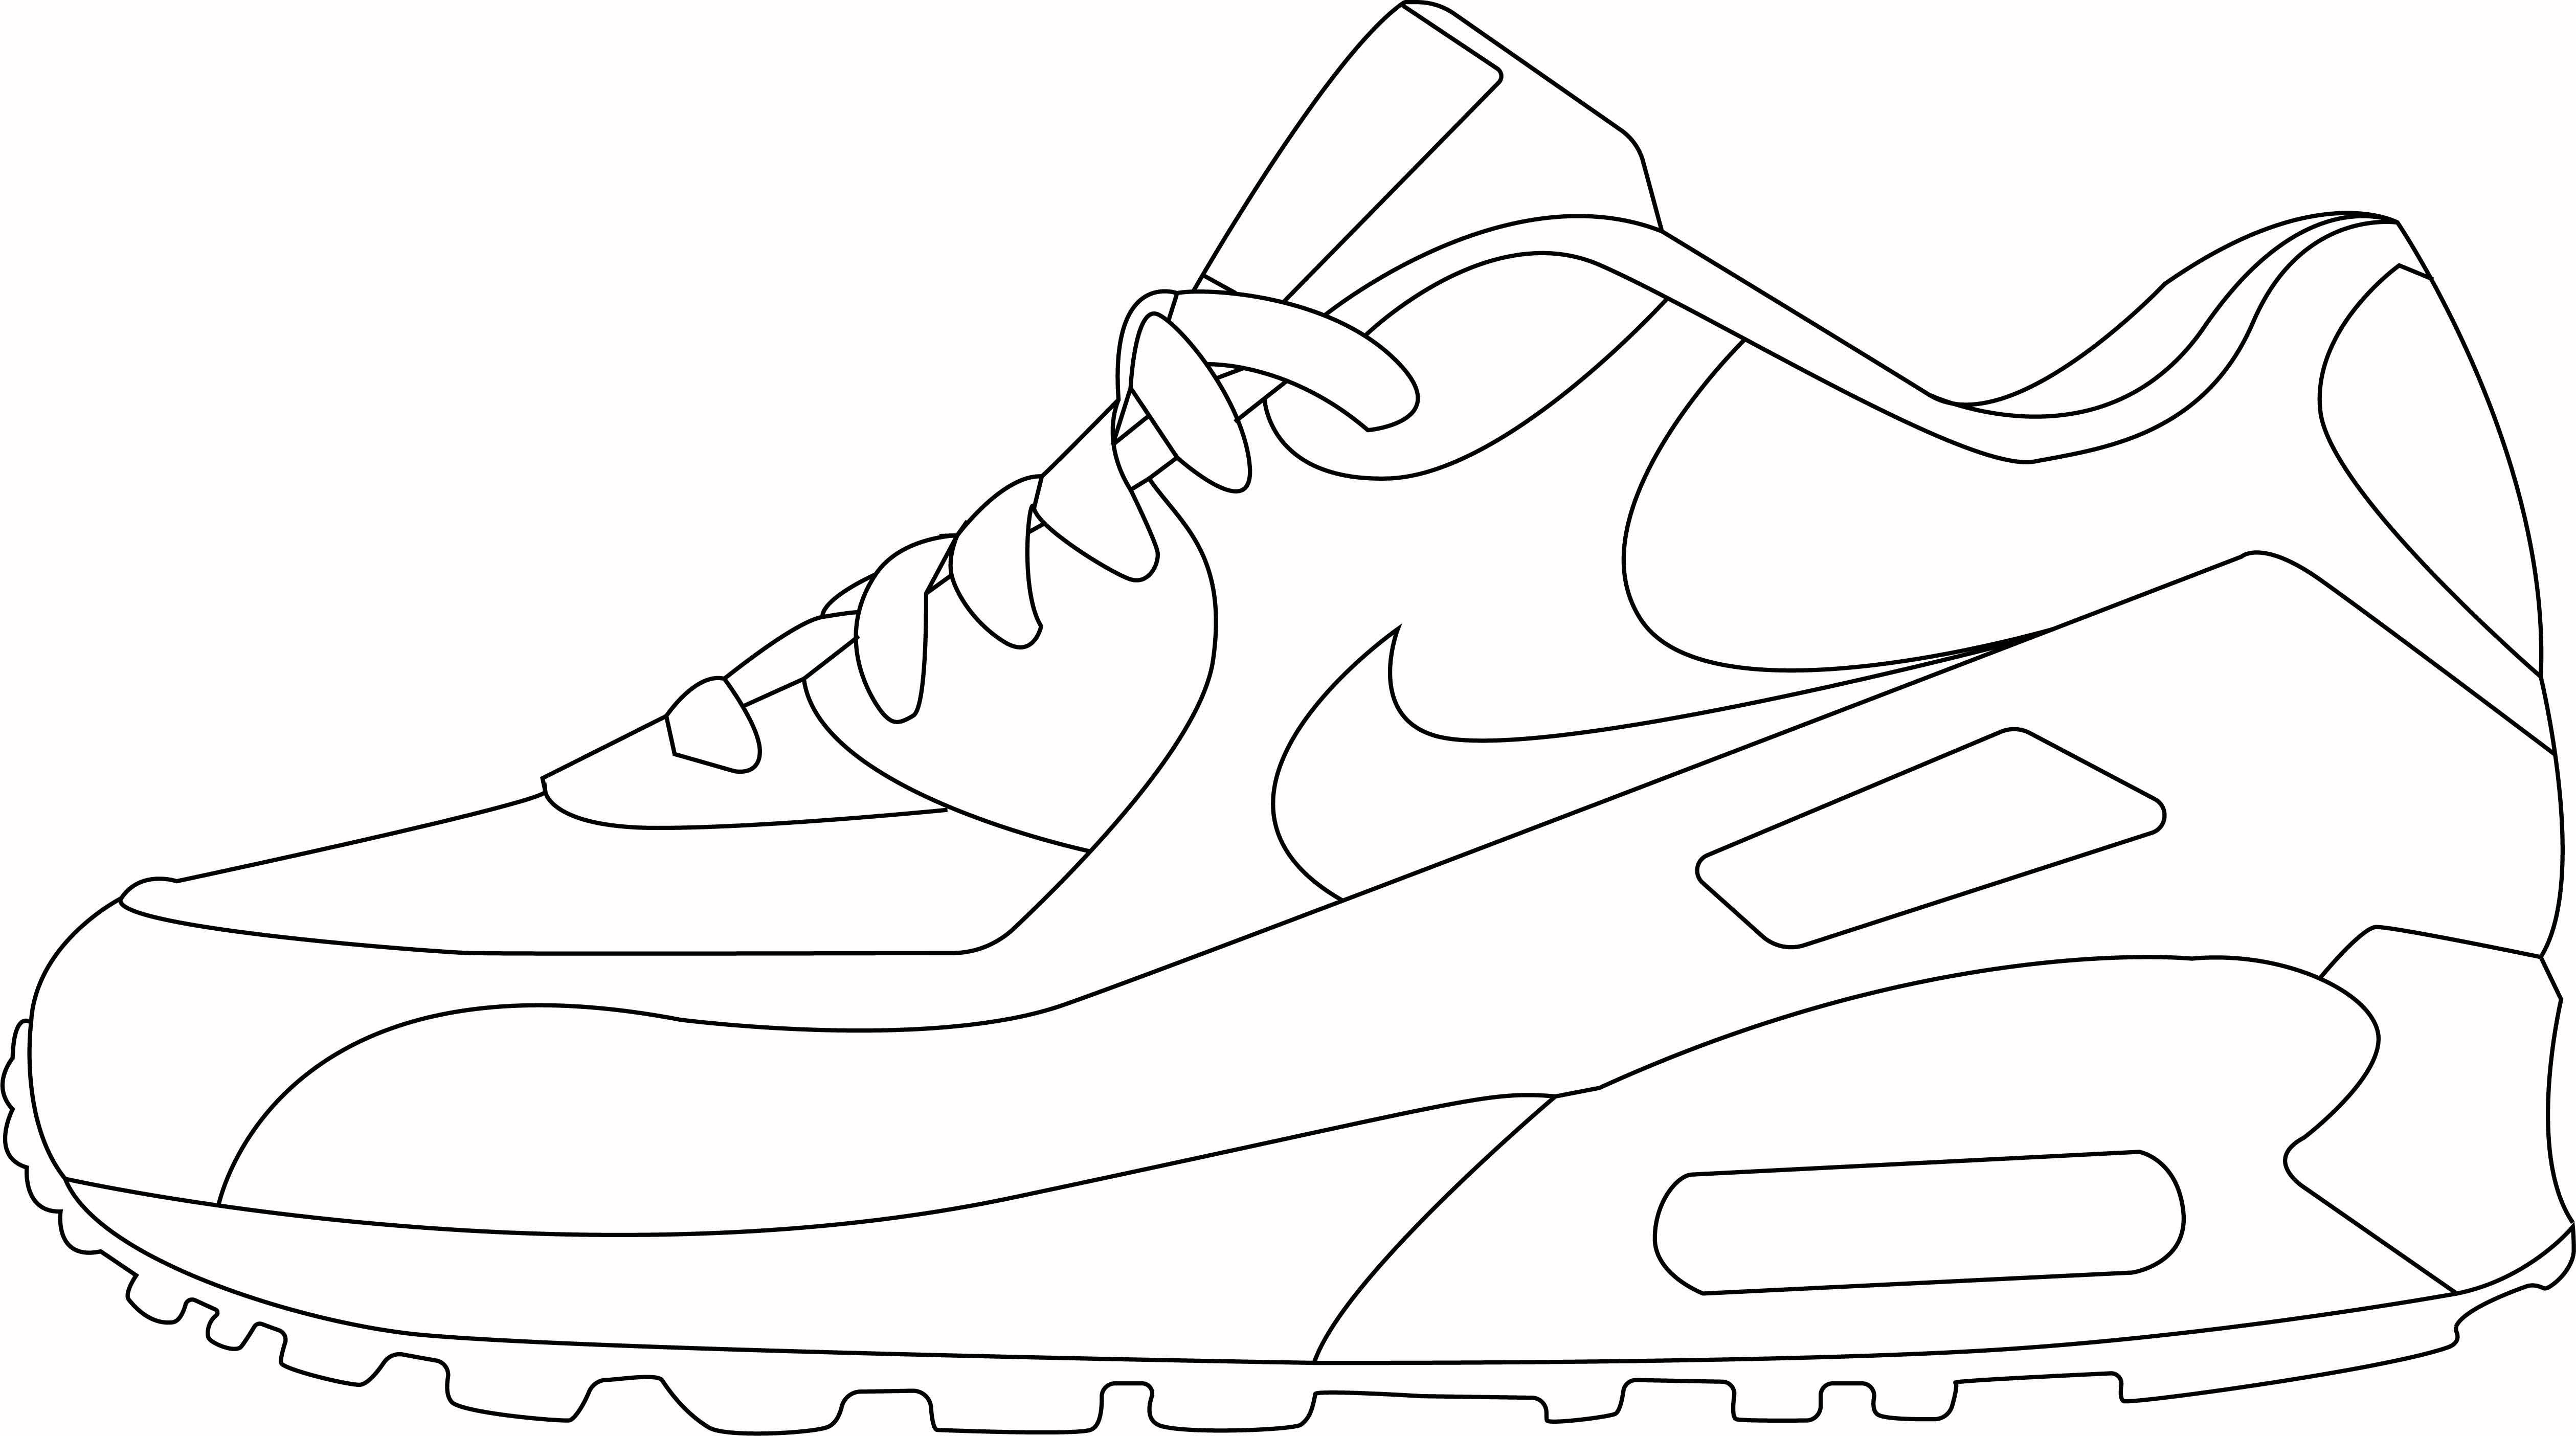 Pin By Nooshin Ri On Elements Of Graphic Design Pde1250 2016 17 Sneaker Art Clothing Patterns Pattern